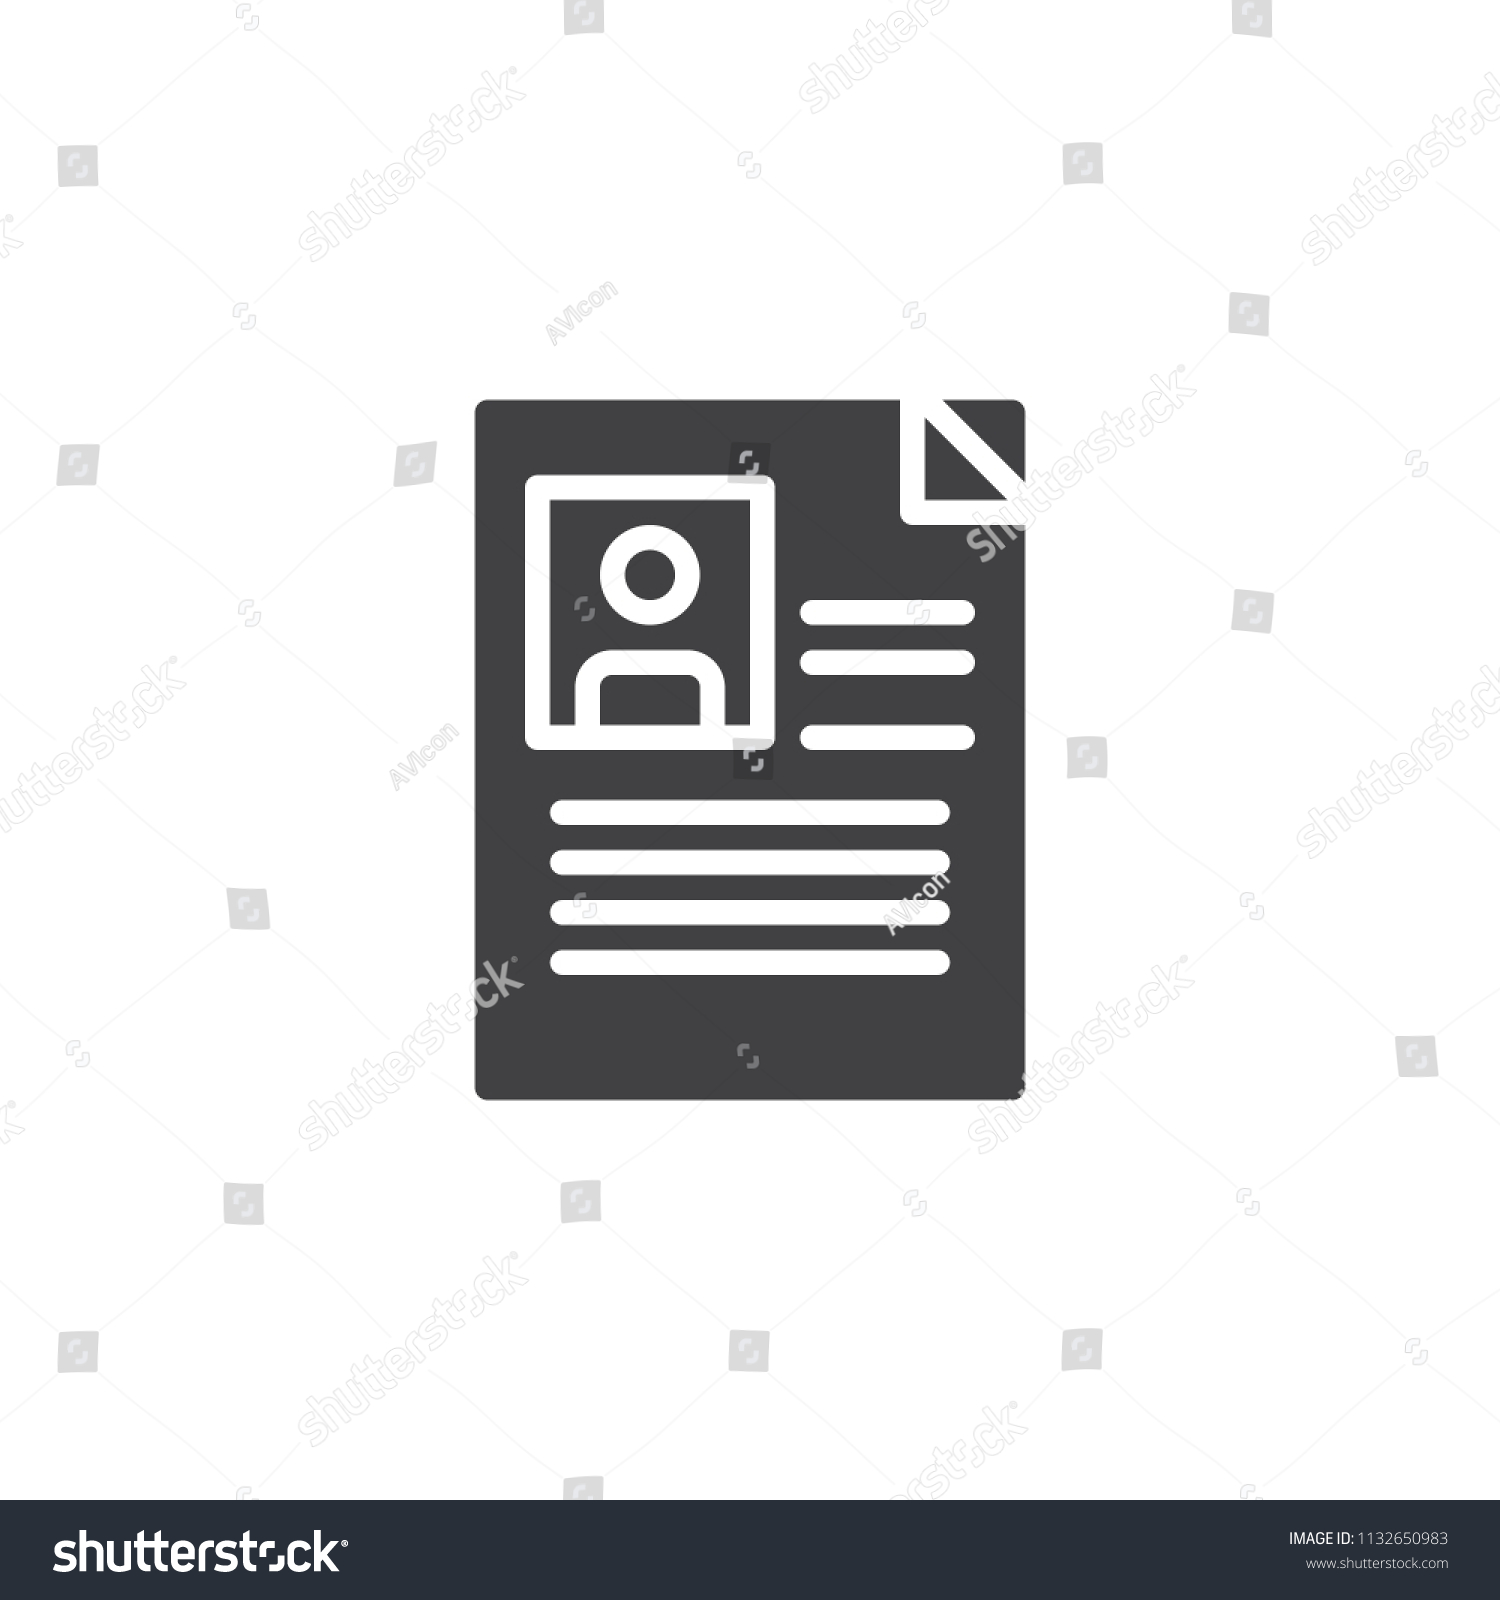 Personal Profile Vector Icon Filled Flat Stock Vector (Royalty Free ...